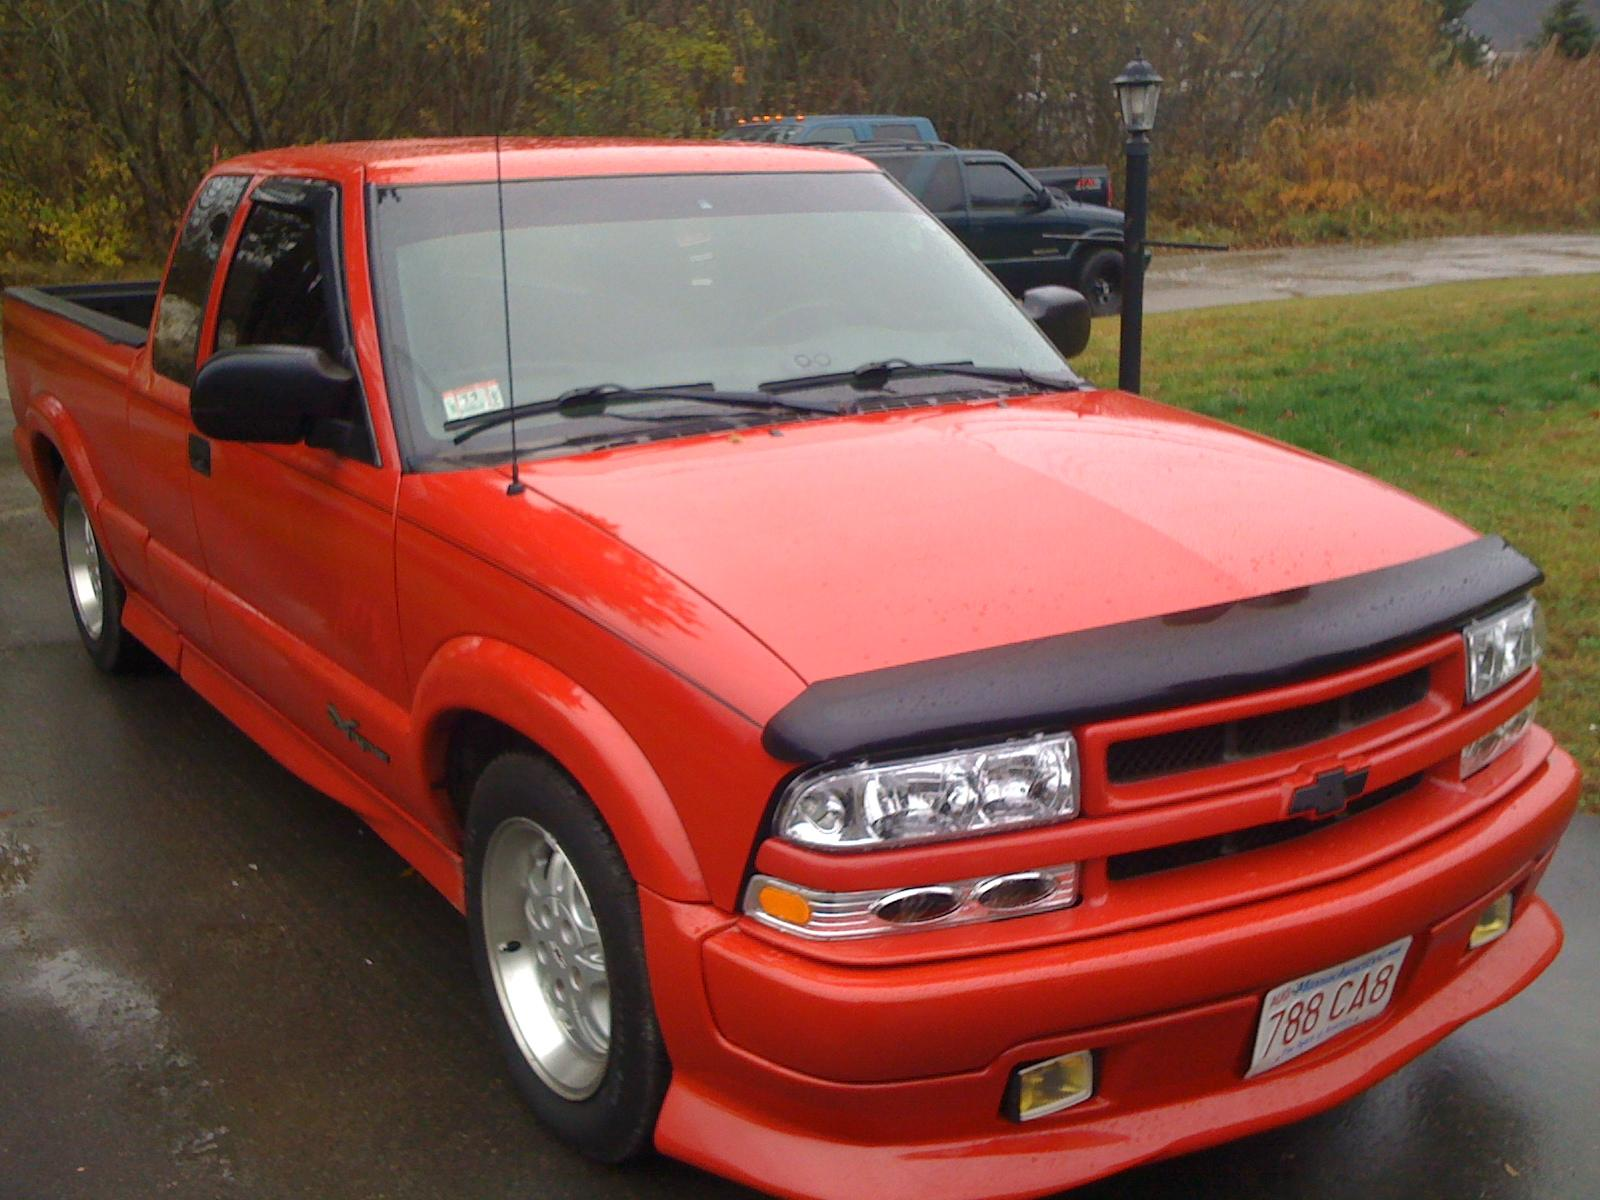 edupree1884 39 s 2000 chevrolet s10 regular cab in marion ma. Black Bedroom Furniture Sets. Home Design Ideas